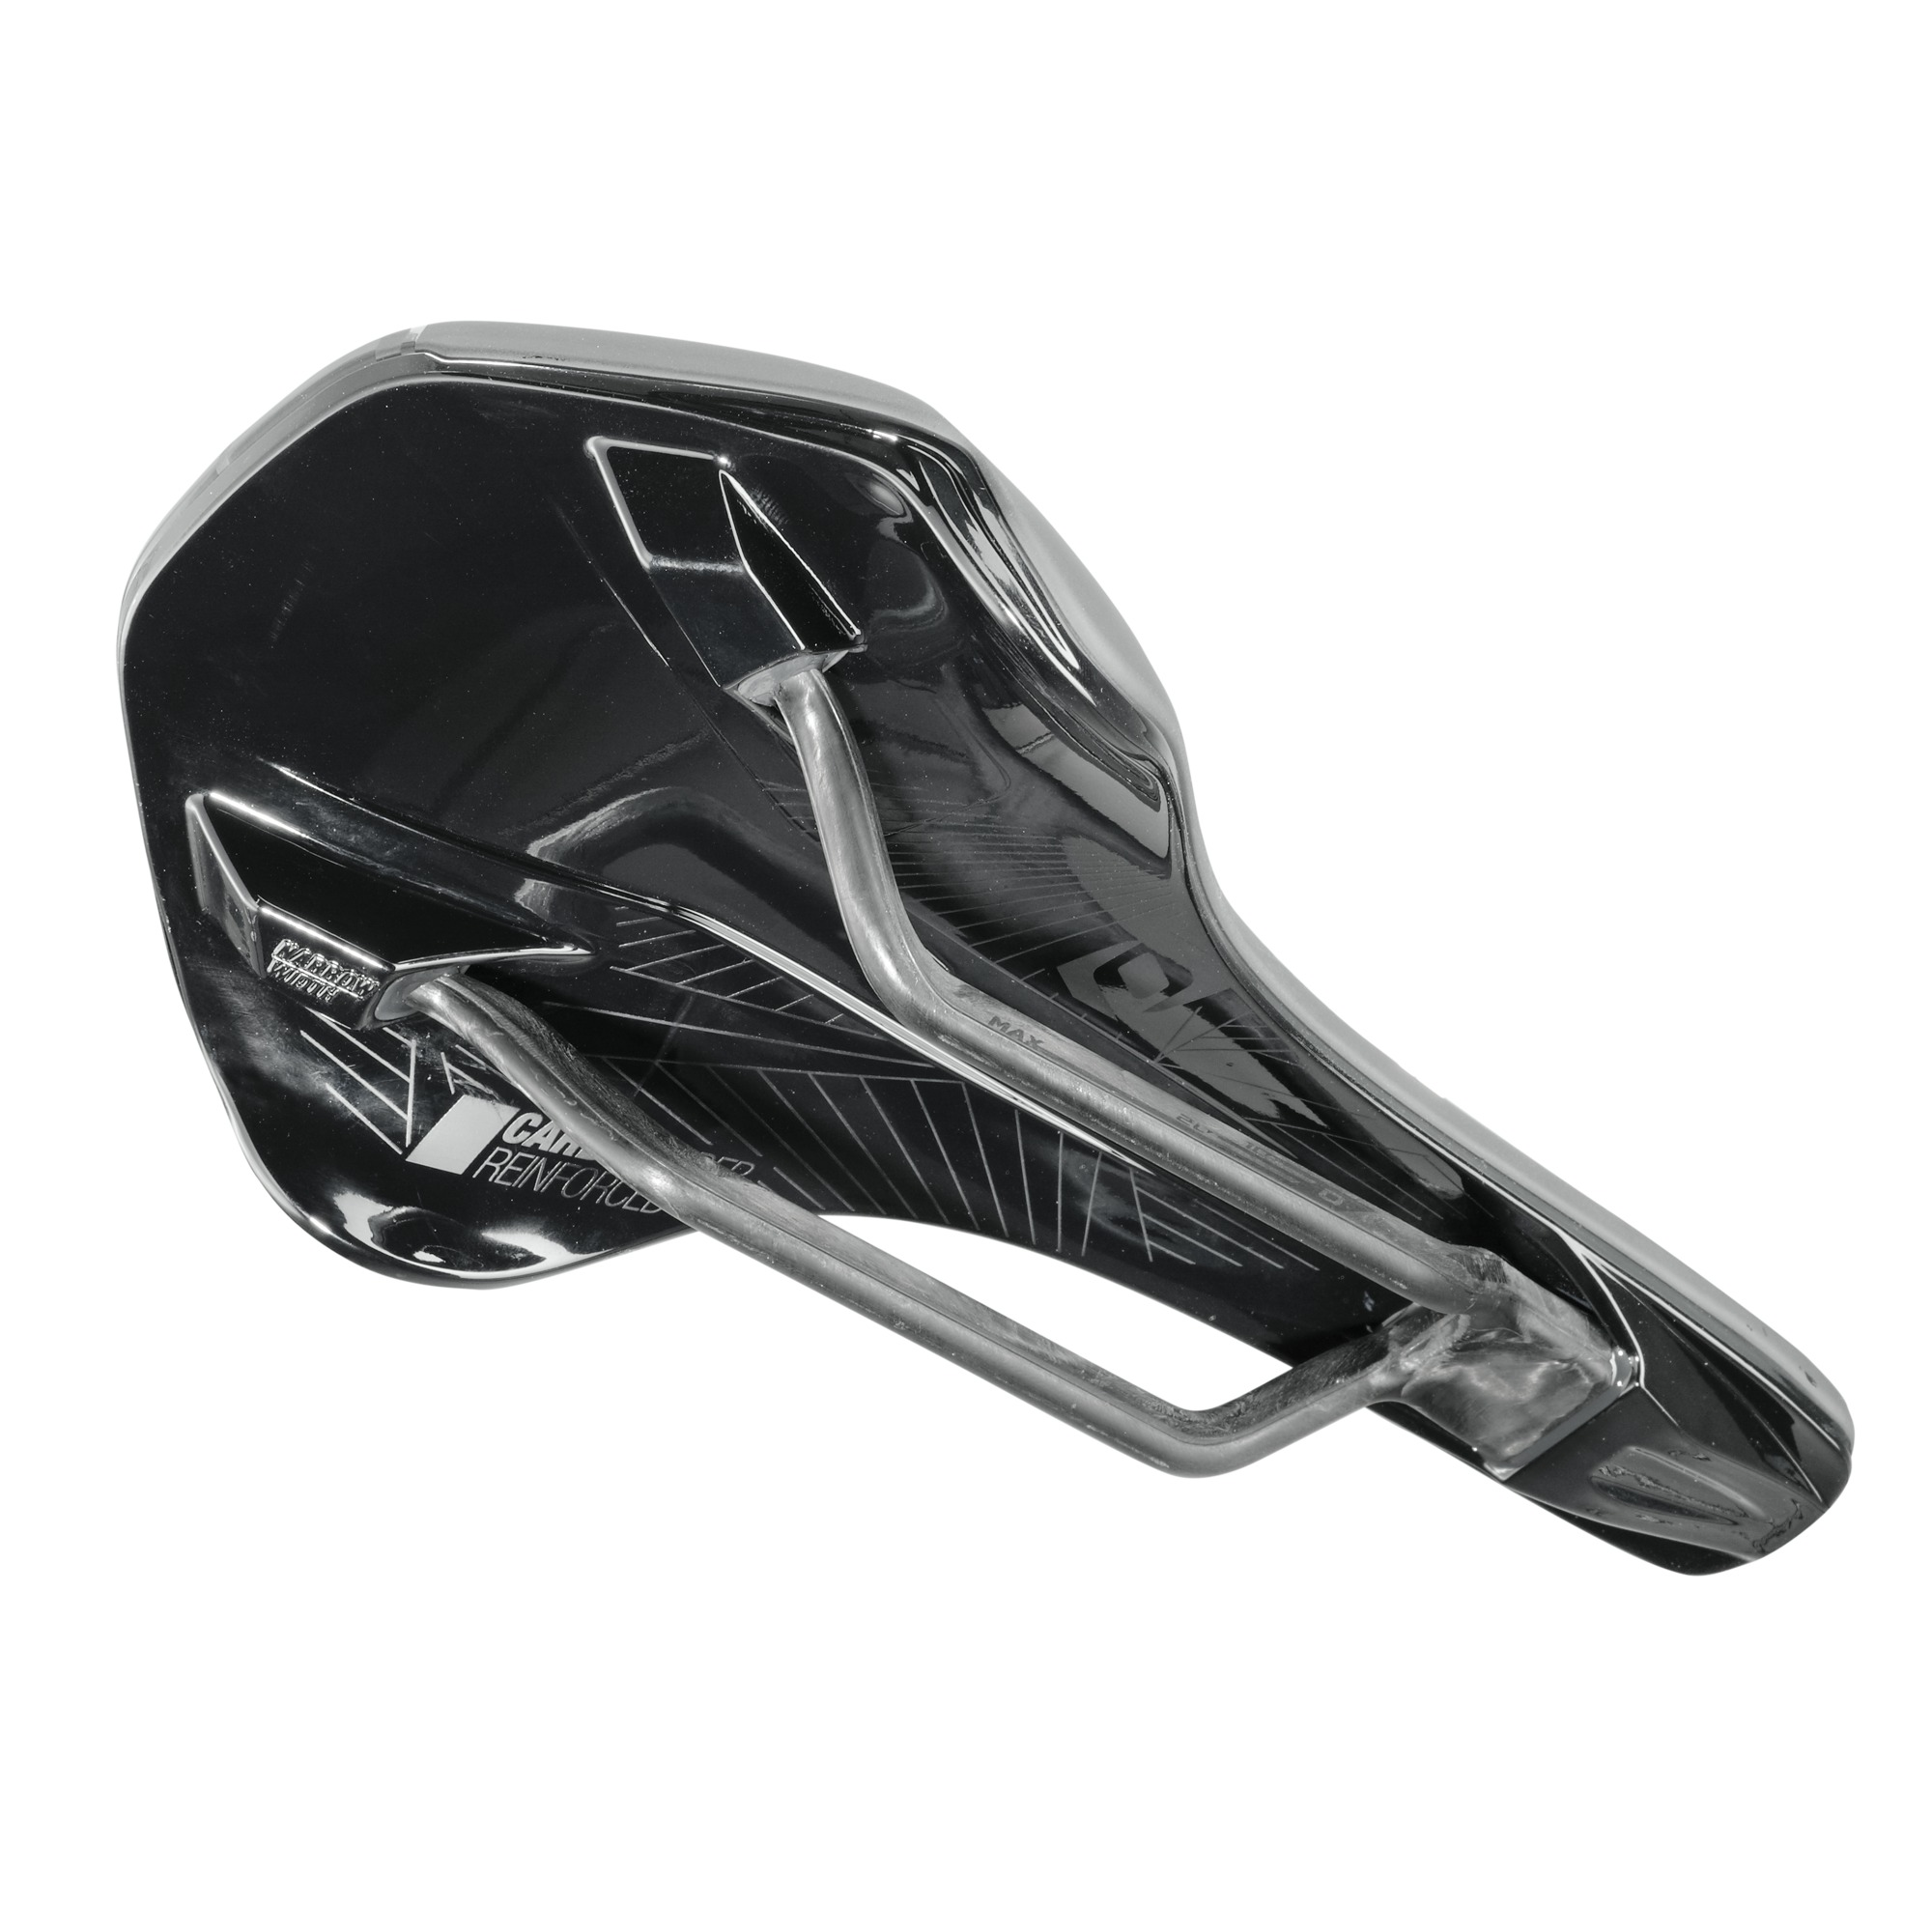 Syncros Women's FL1.0 Saddle